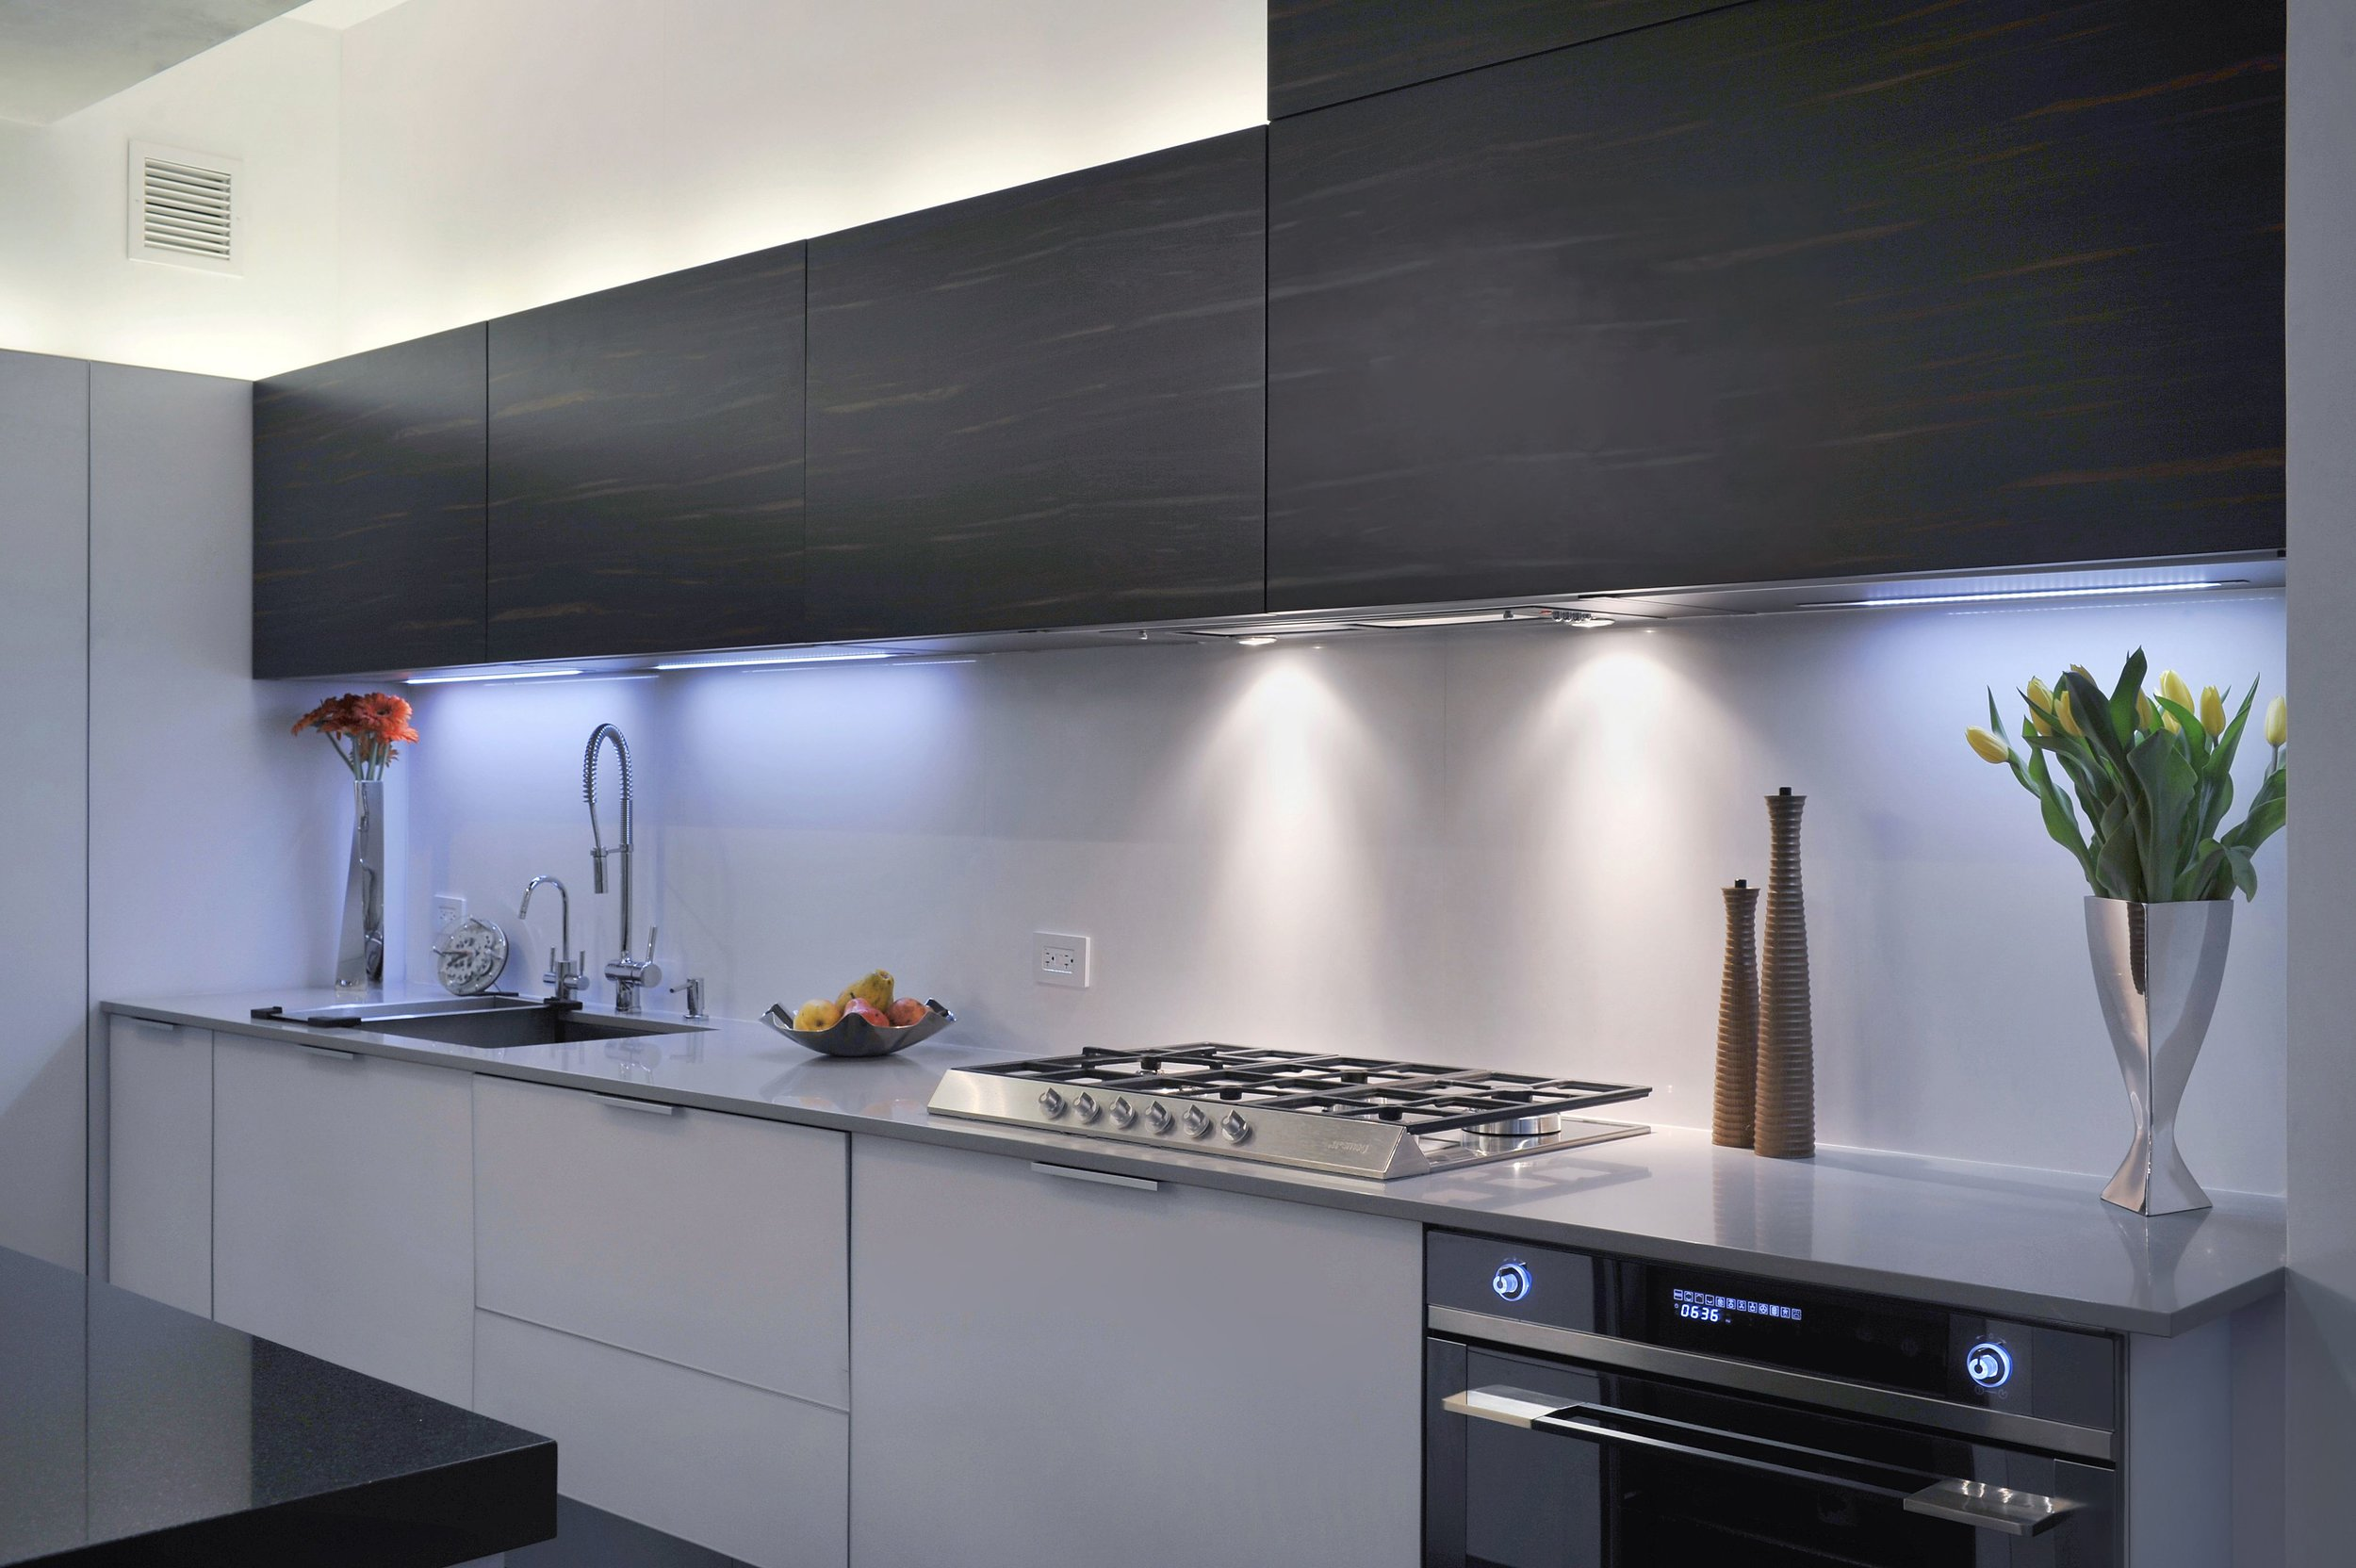 Contemporary style kitchen with stainless range